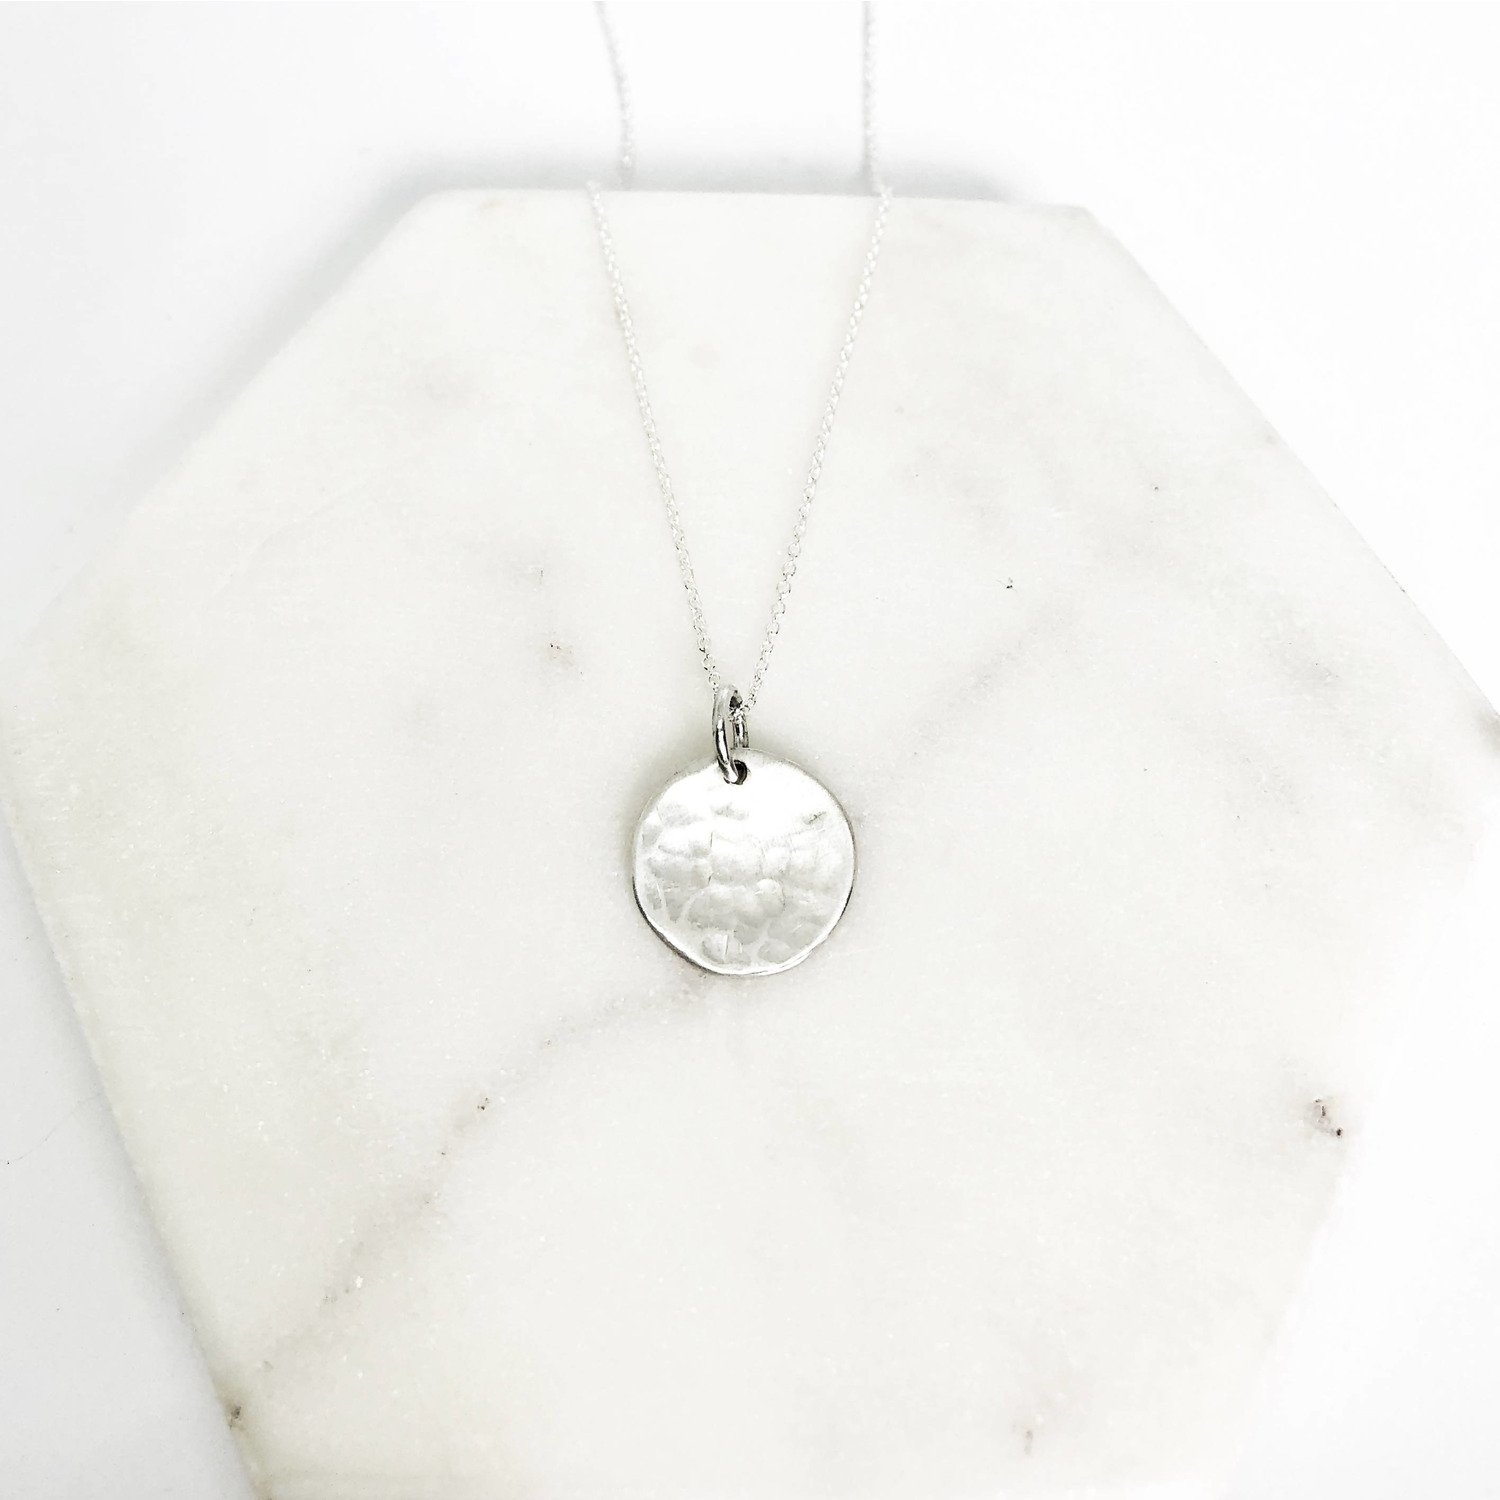 Full moon necklace (Hammered disc)